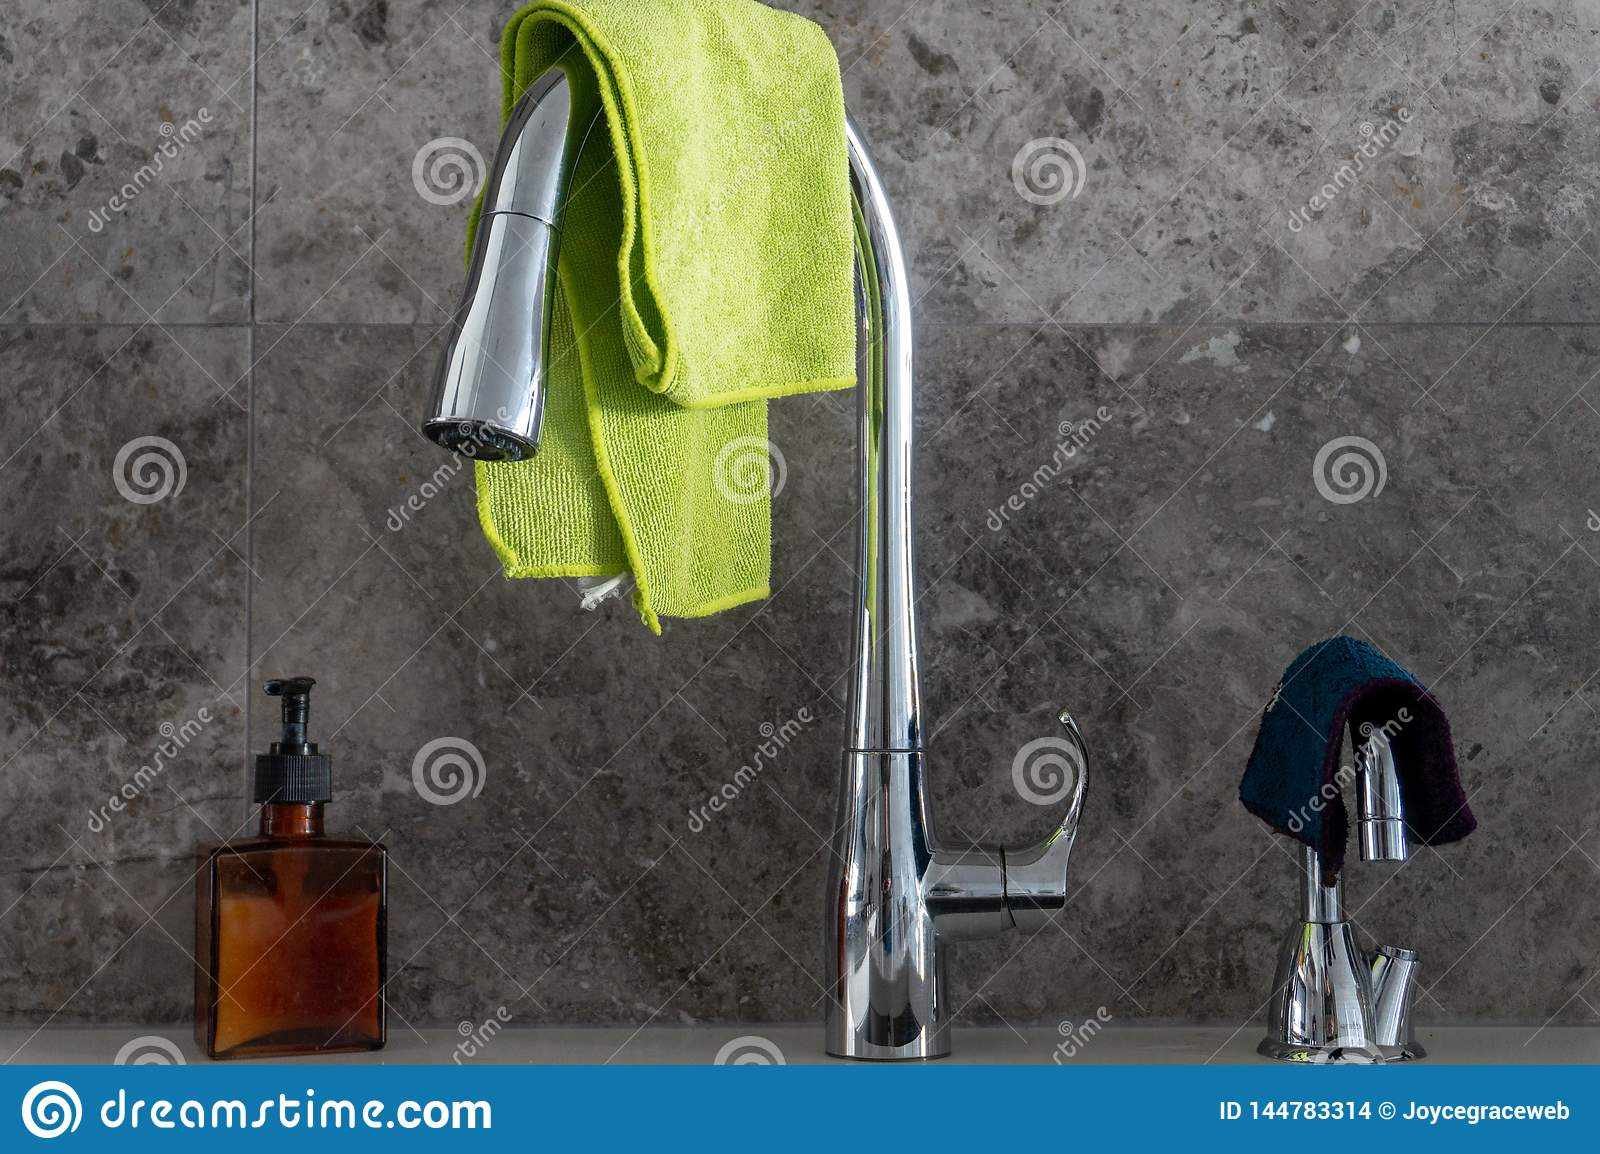 Hand Soap Pump Chrome Kitchen Sink Faucet Filtered Water Tap With Microfibre Cloths And Grey Marble Stone Tile Backsplash Stock Photo Image Of Home Green 144783314